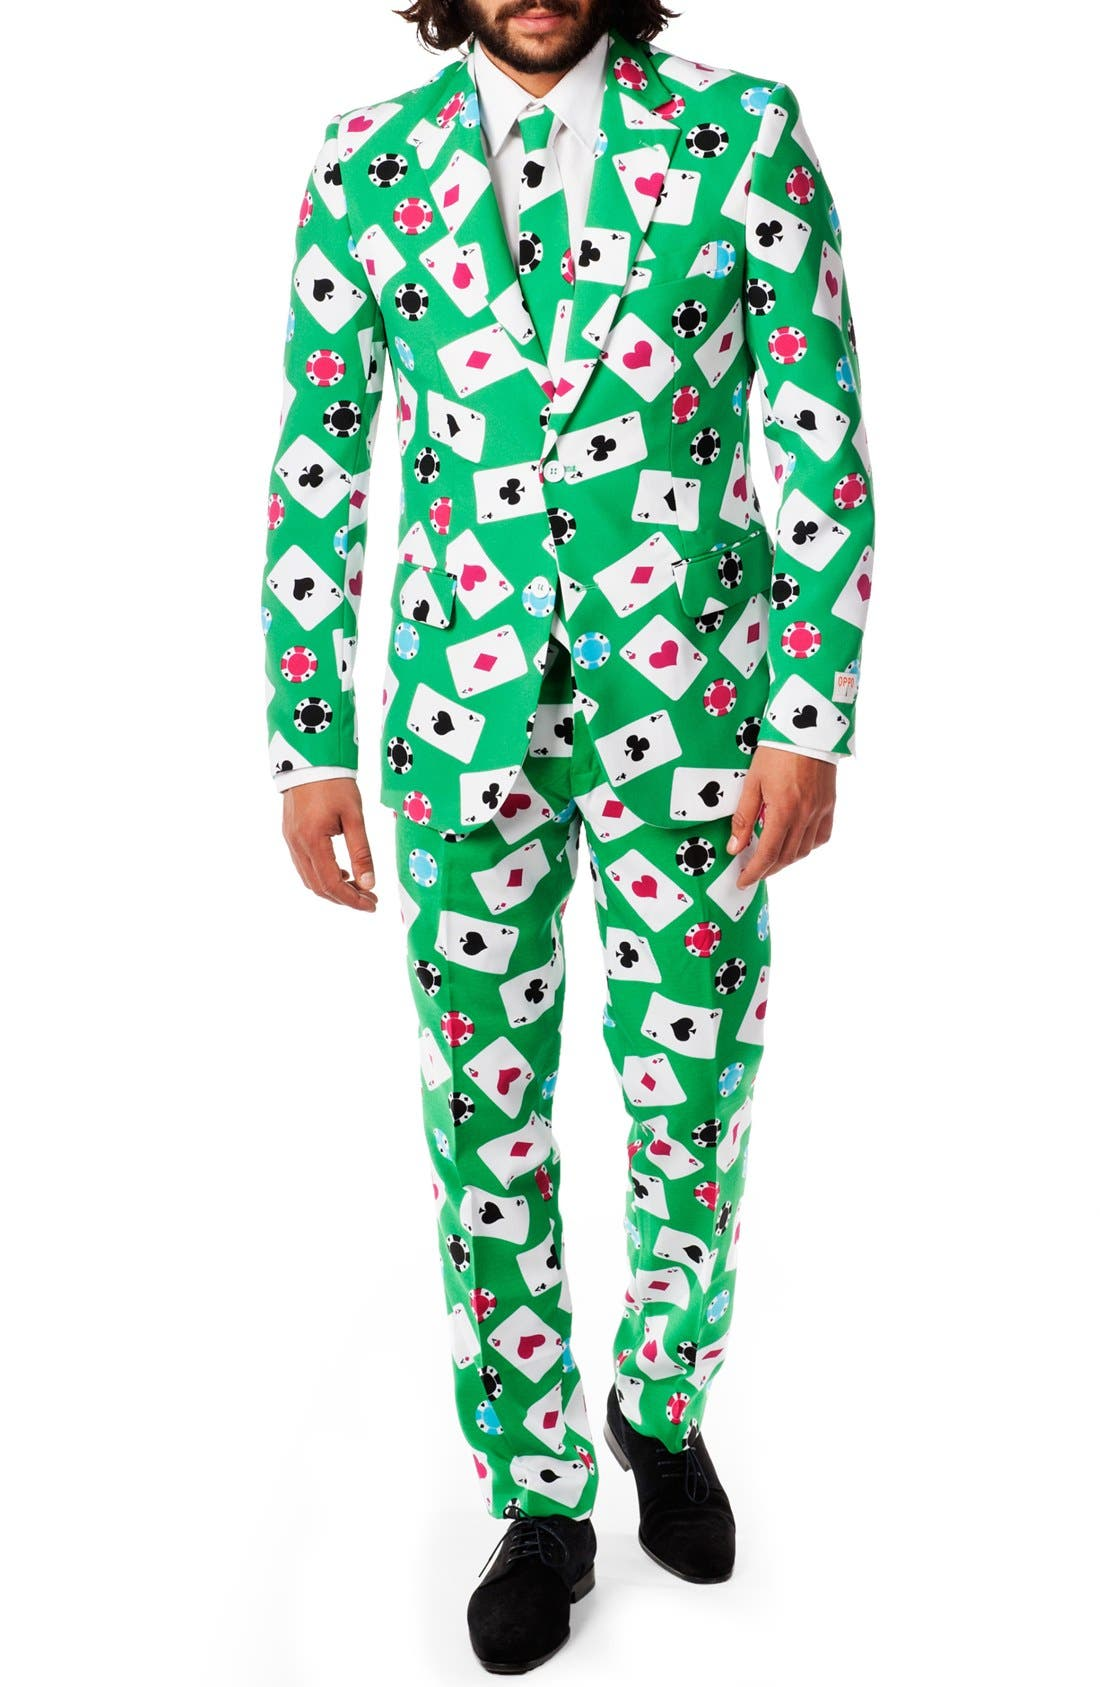 'Poker Face' Trim Fit Suit with Tie,                             Main thumbnail 1, color,                             Green